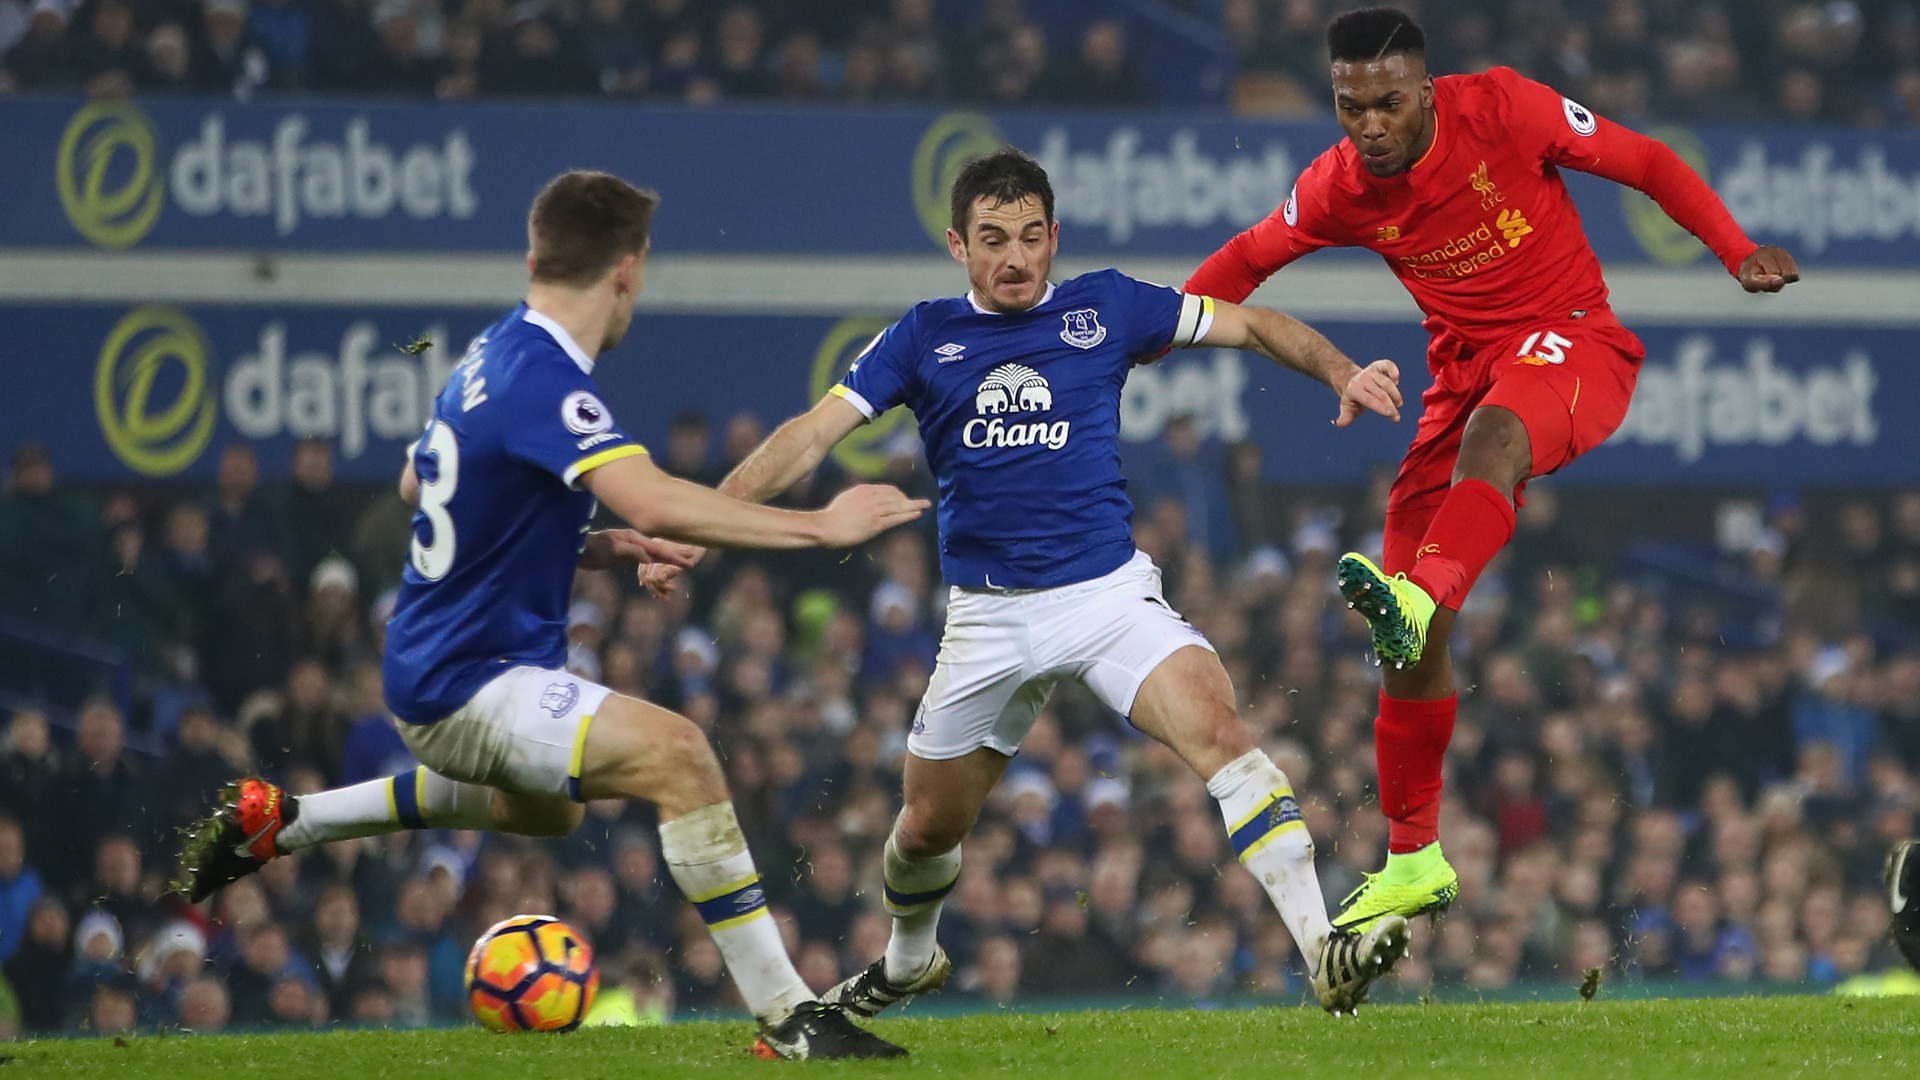 Jordan Henderson hoping Daniel Sturridge can return to goalscoring form for Liverpool